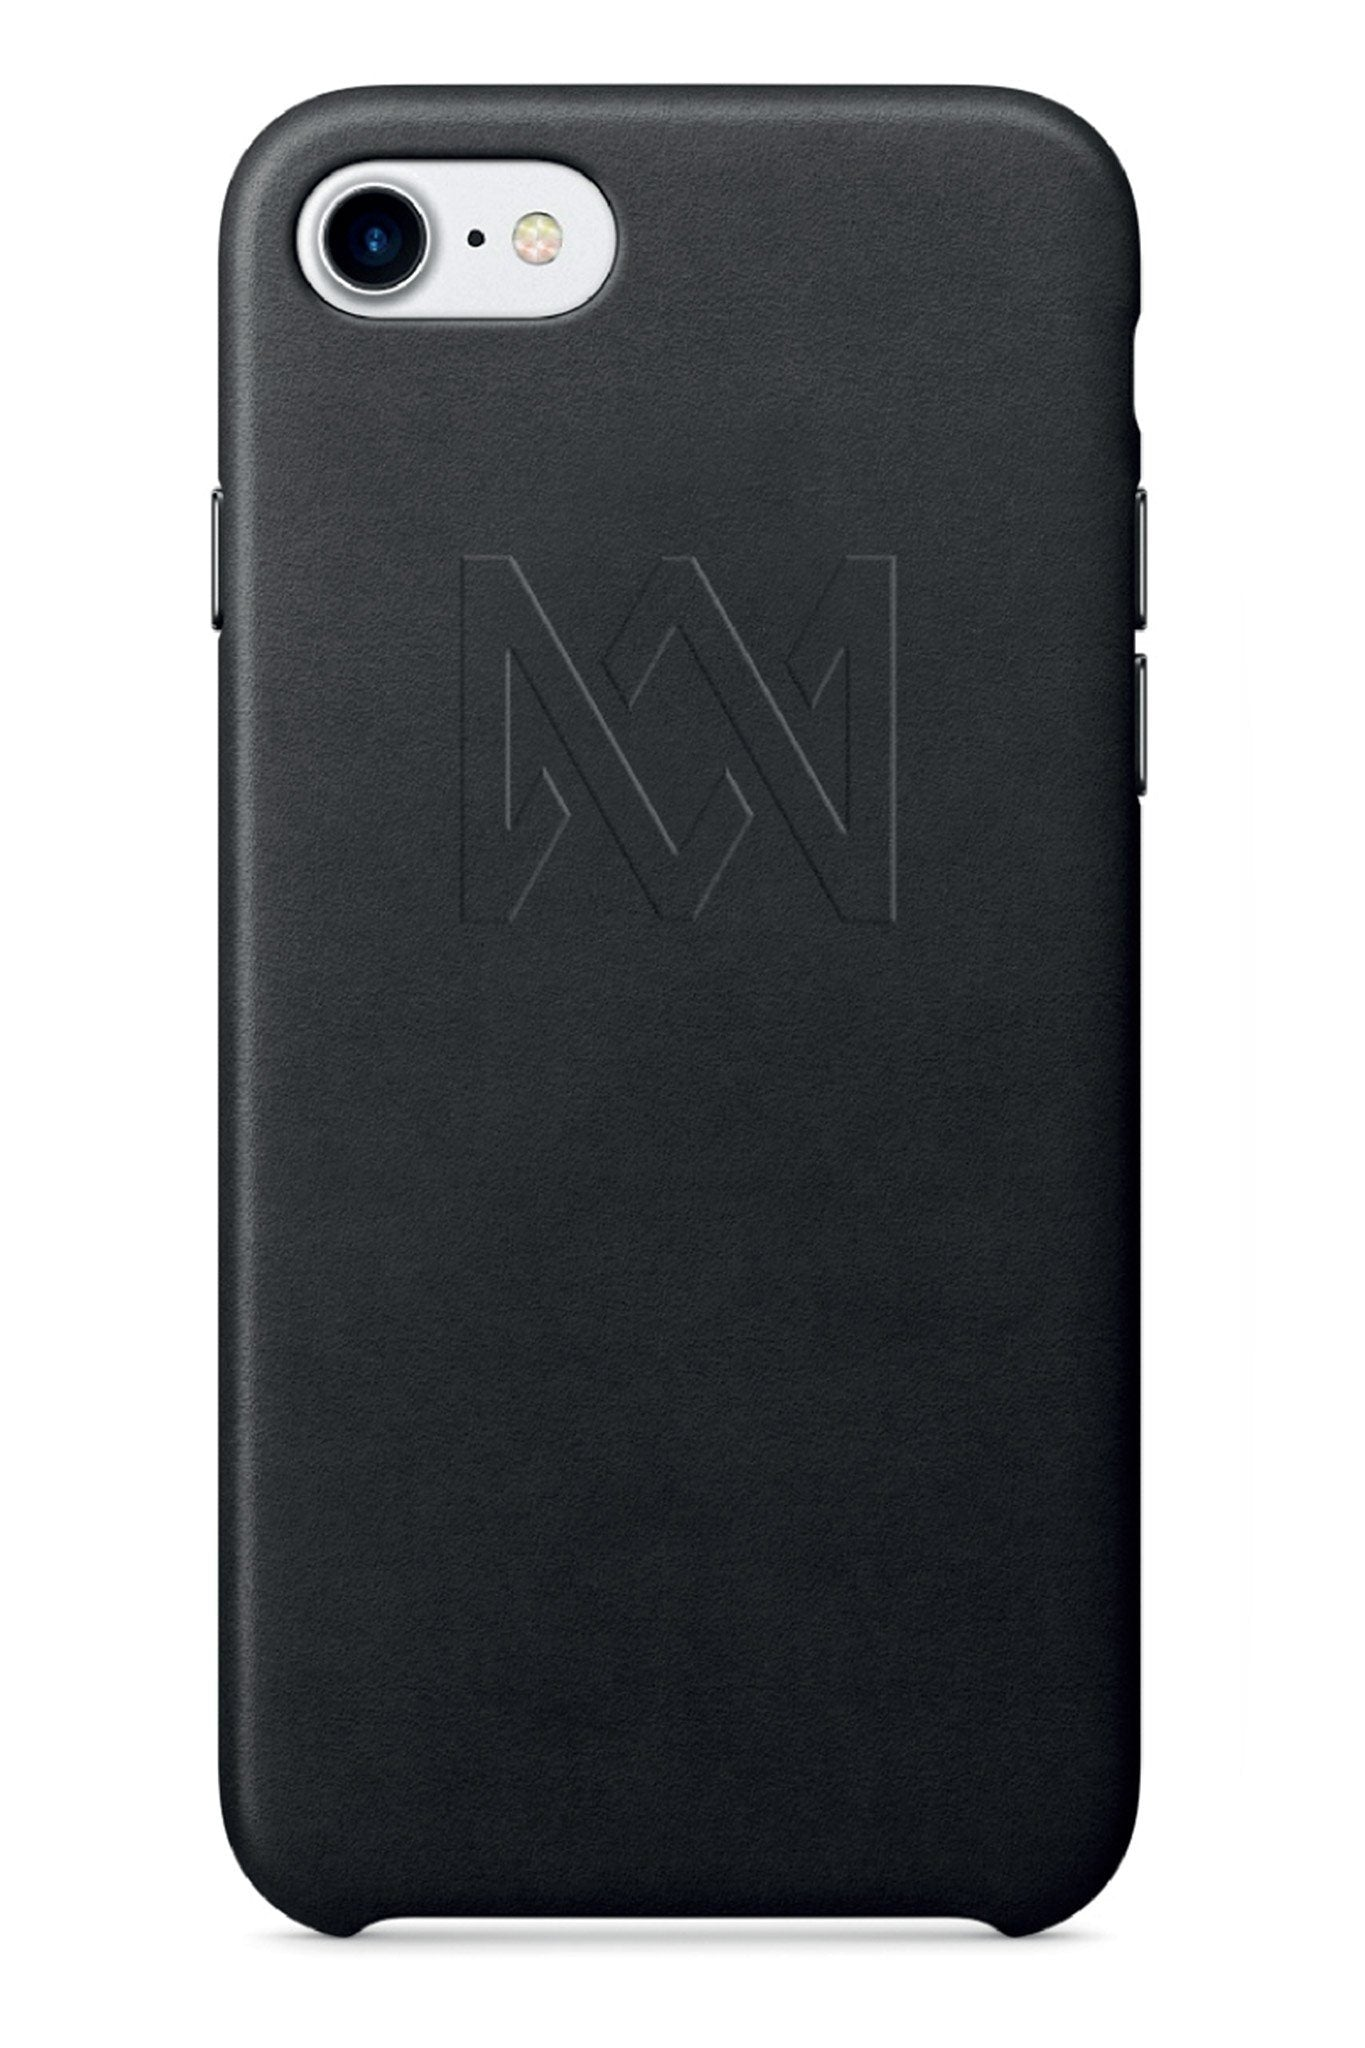 Mobile Cover - Black Leather IPhone Case (Limited)